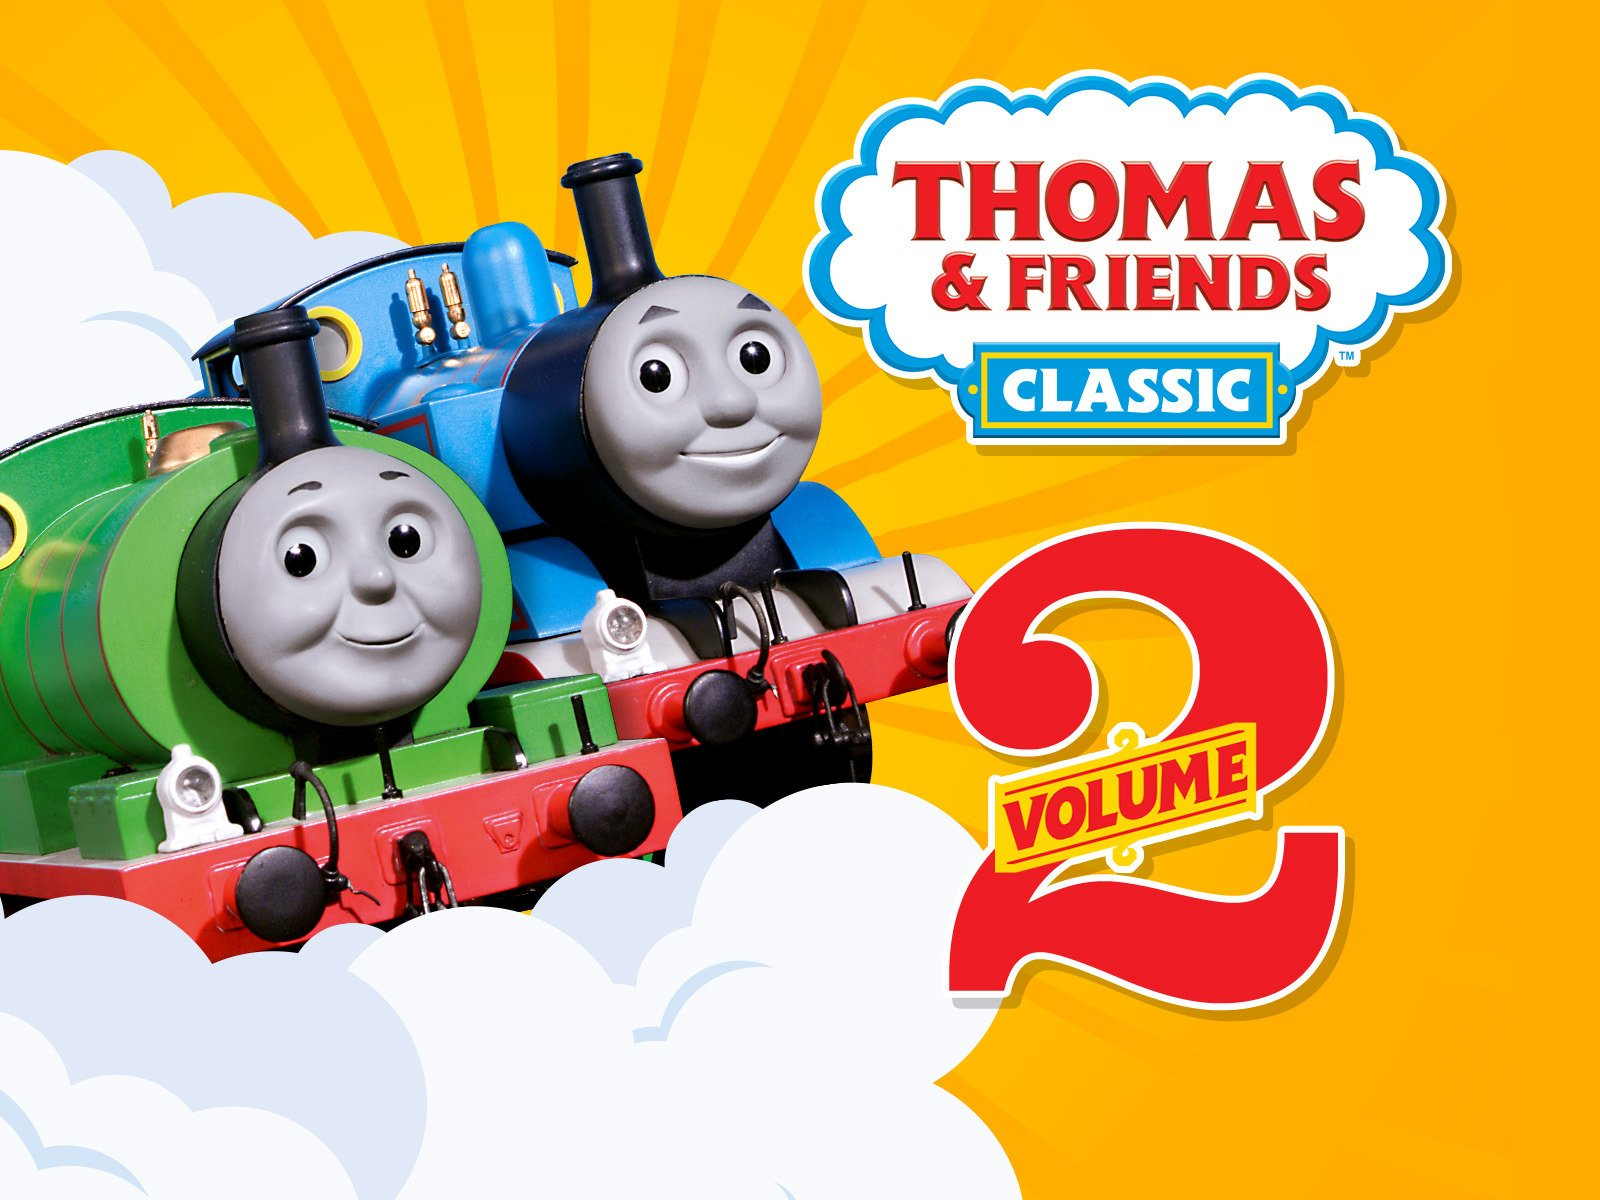 File:ThomasandFriendsClassicVolume2.jpg